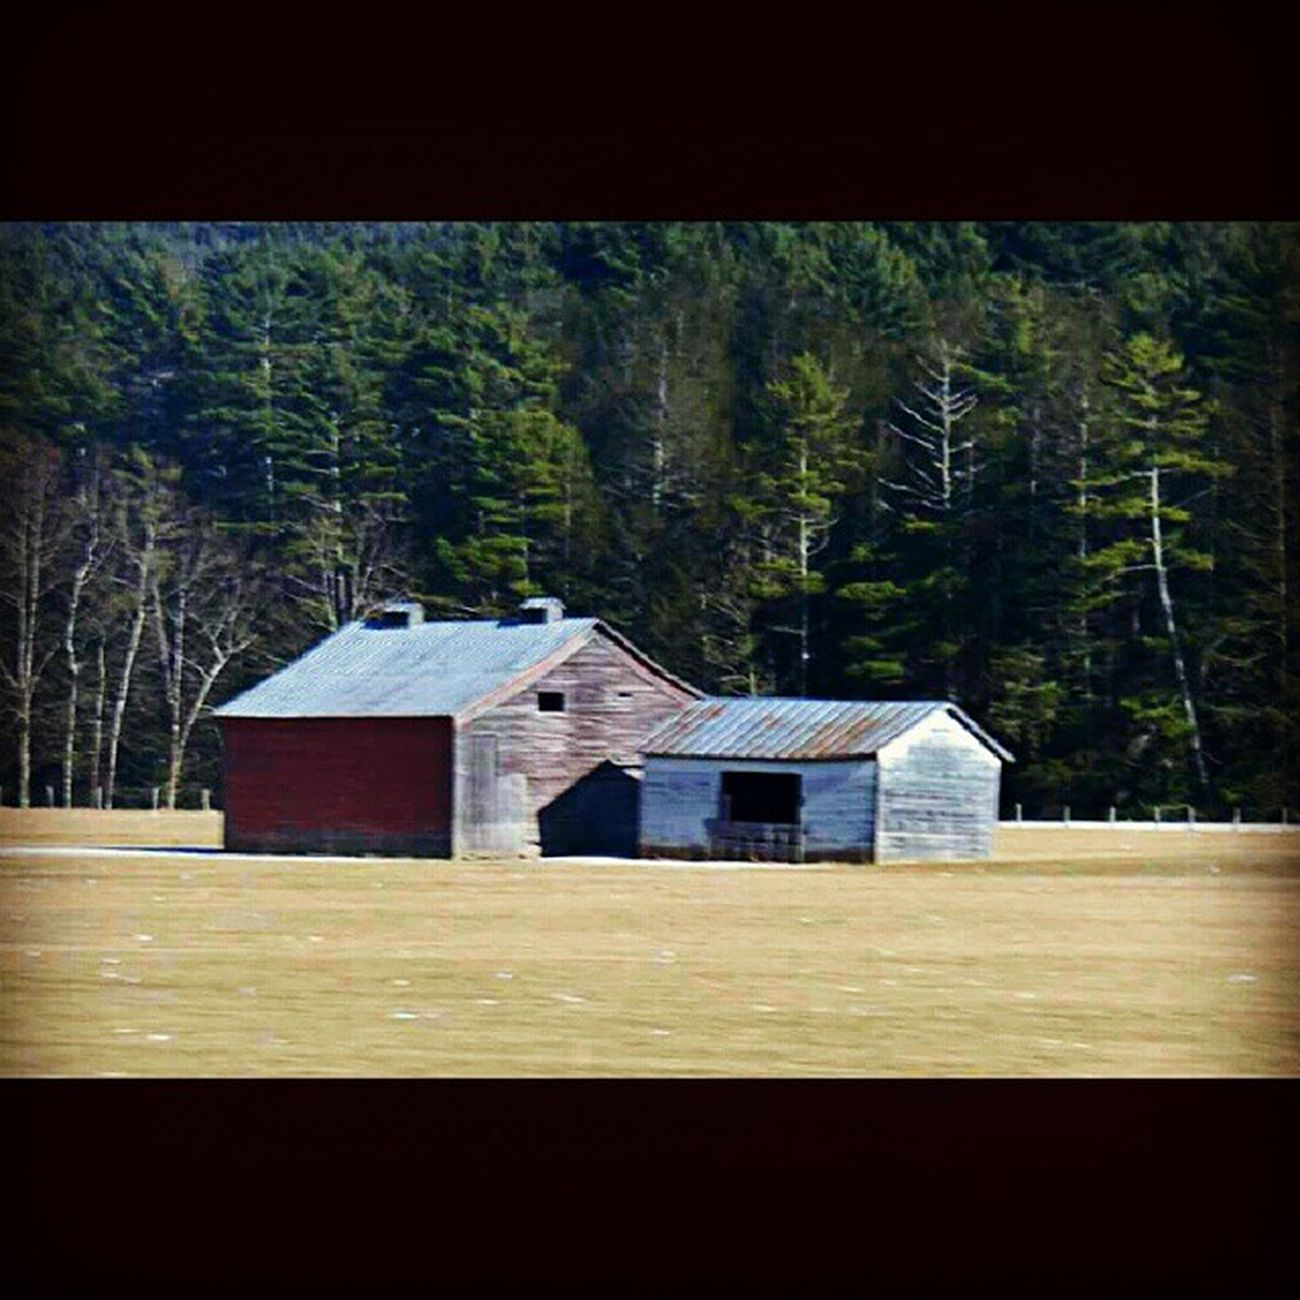 Greenbank Westvirginia Rsa_rural Appalachia barnsofinstagram fiftyshades_of_nature gotowv ipulledoverforthis igers_of_wv insta_america icu_usa jj_unitedstates ig_addicts nature ruralphotography rural rural_love shotwithlove trb_rural visitwv wv_igers wv_nature